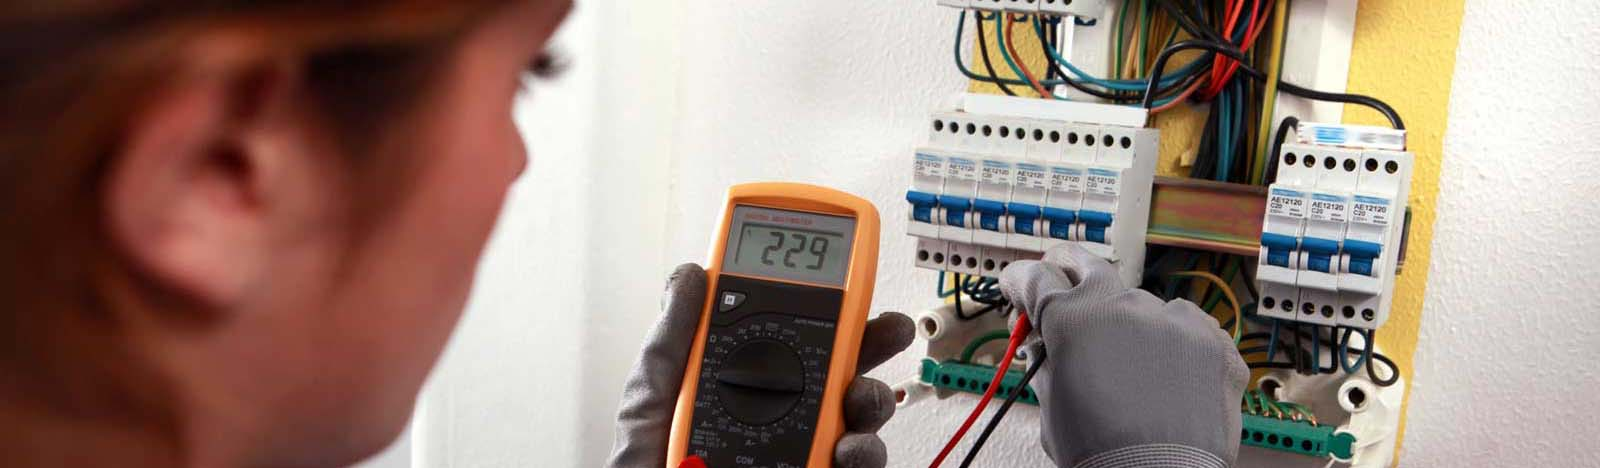 Qualified Licensed Residential and Commercial Electricians